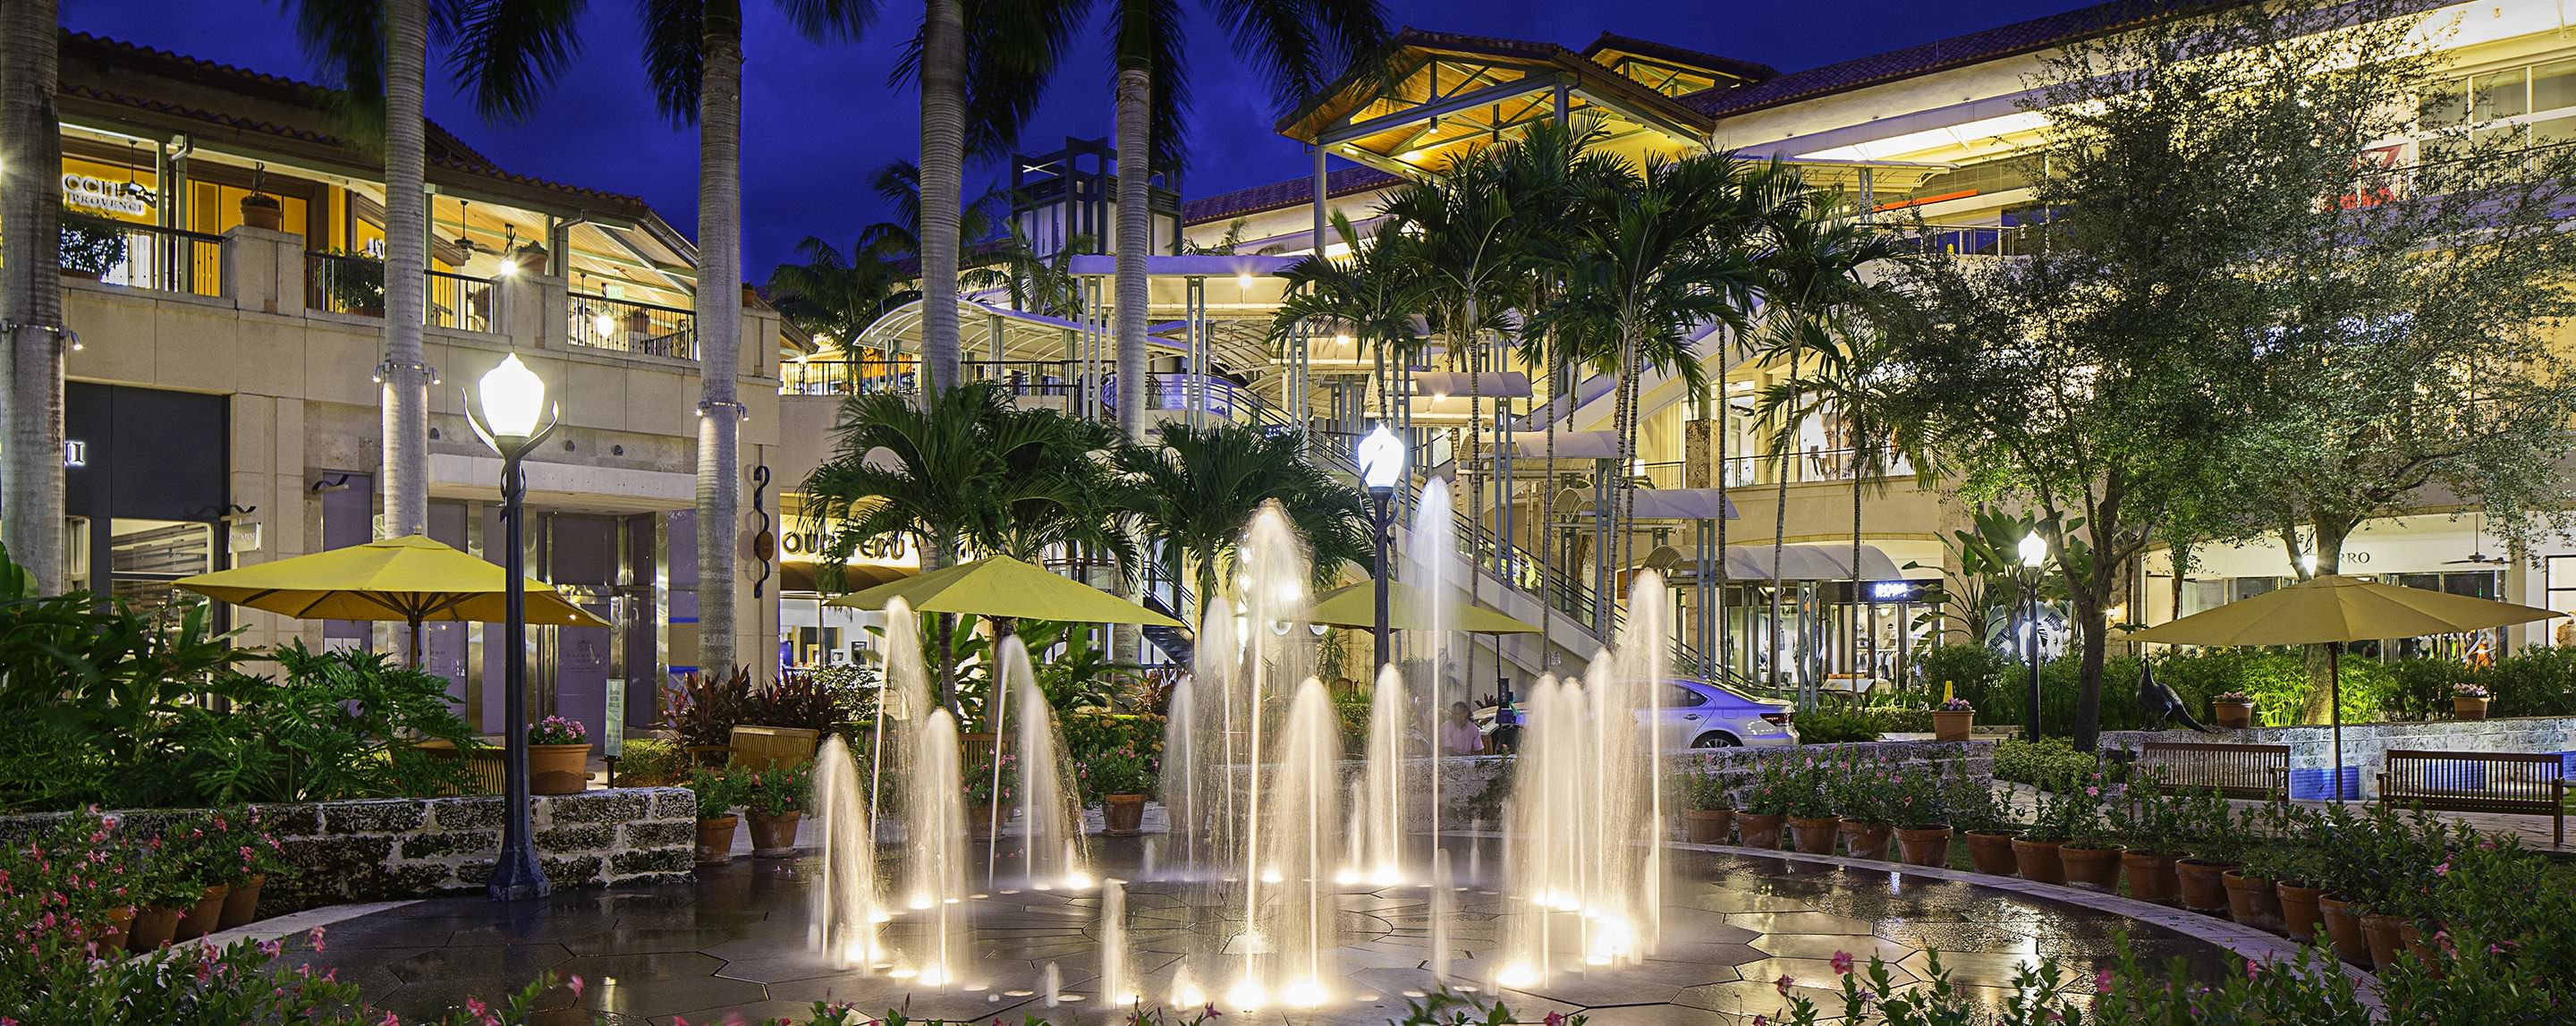 At night, a GGP property is beautifully lit up in a store front lined outdoor walkway decorated with fountains and trees.